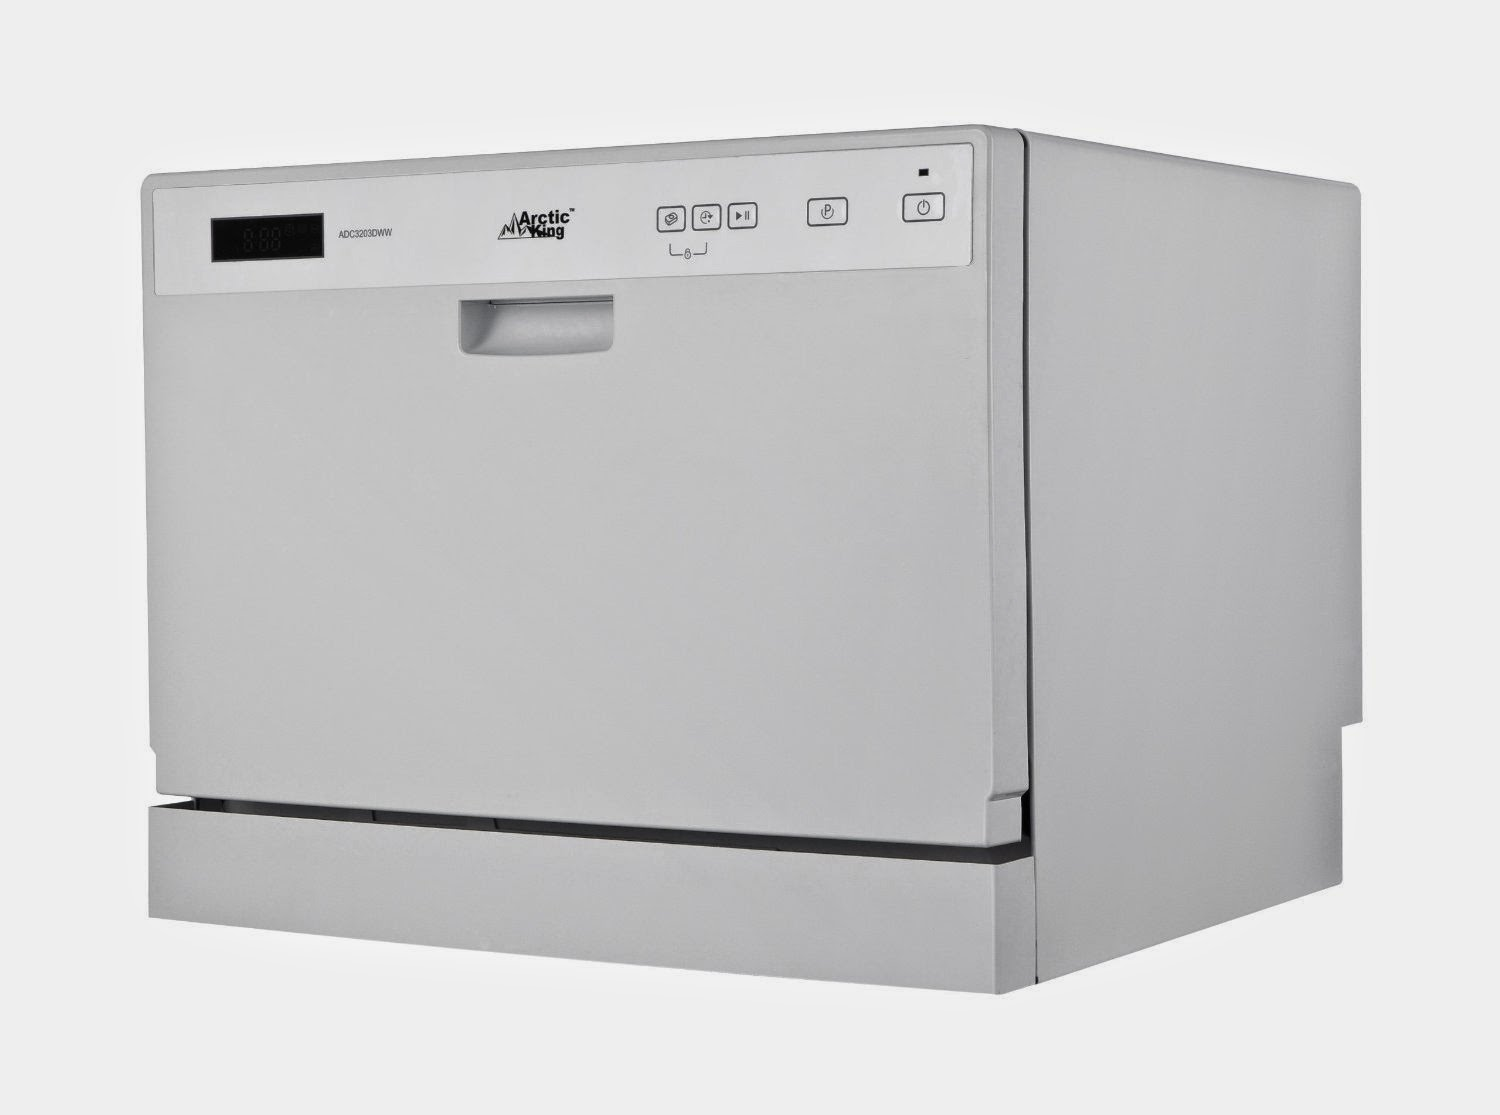 white midea arctic king countertop dishwashers - Portable Dishwasher